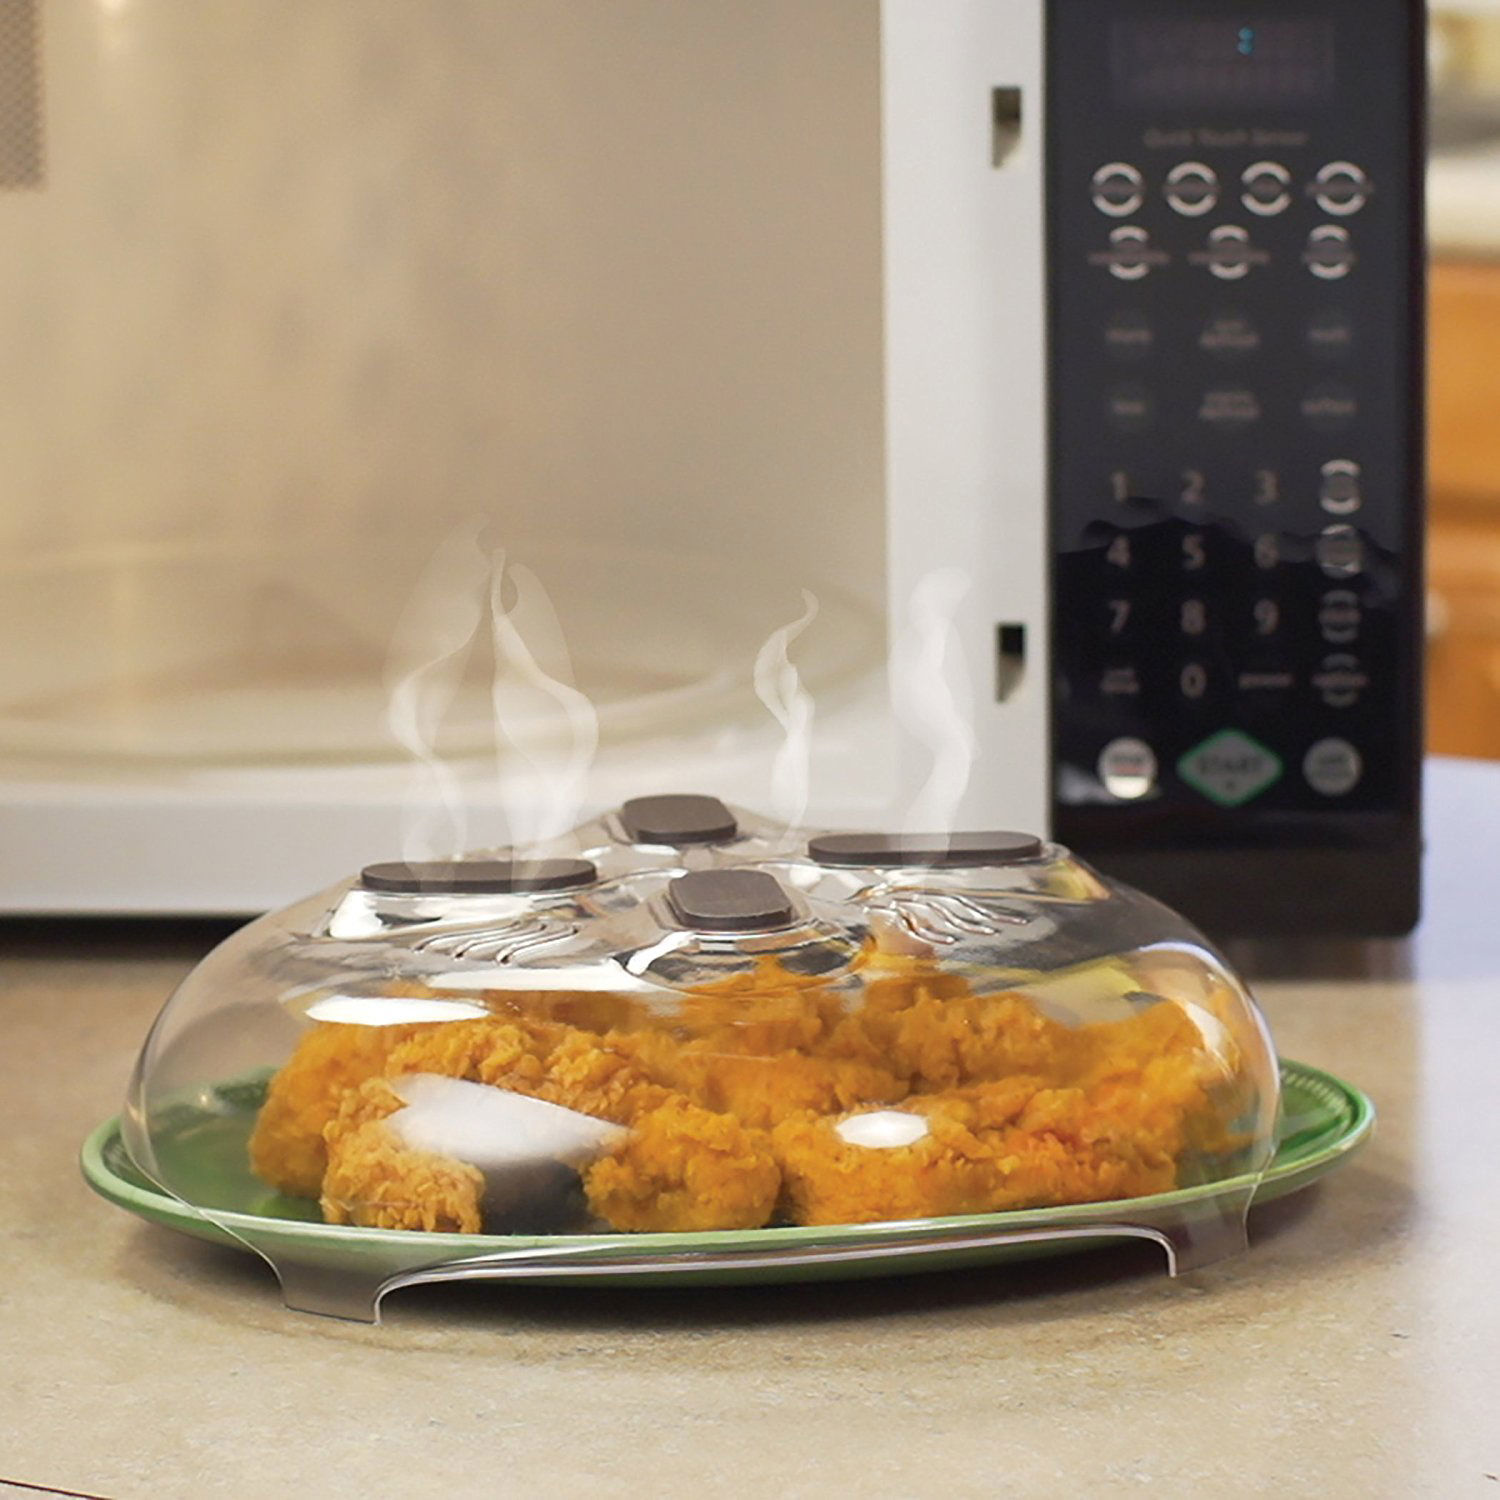 Splatter Tool in Front of Microwave